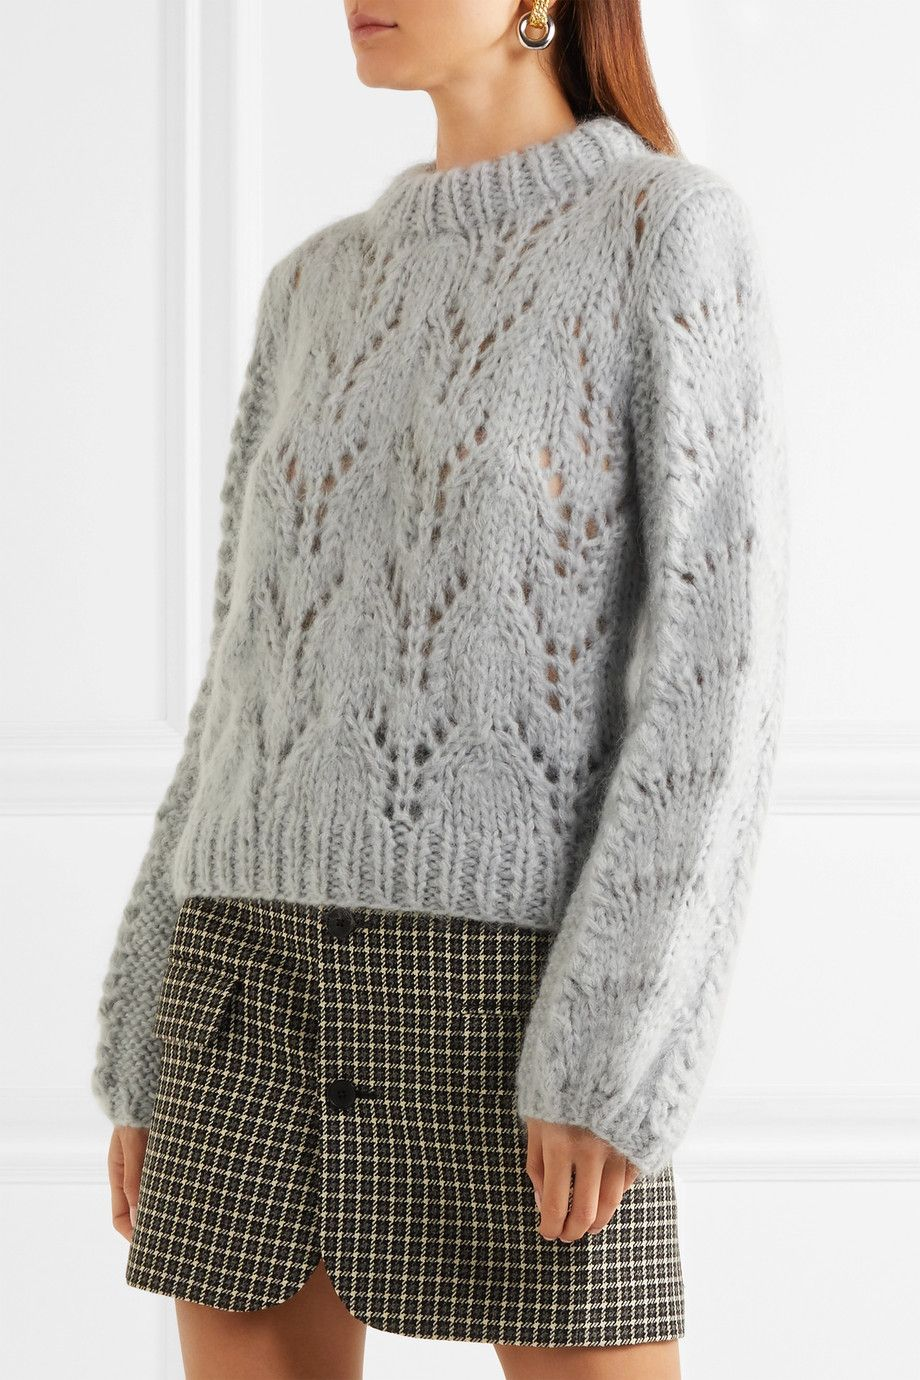 GANNI   Faucher mohair and wool-blend sweater   NET-A-PORTER.COM ... b3a5c578af